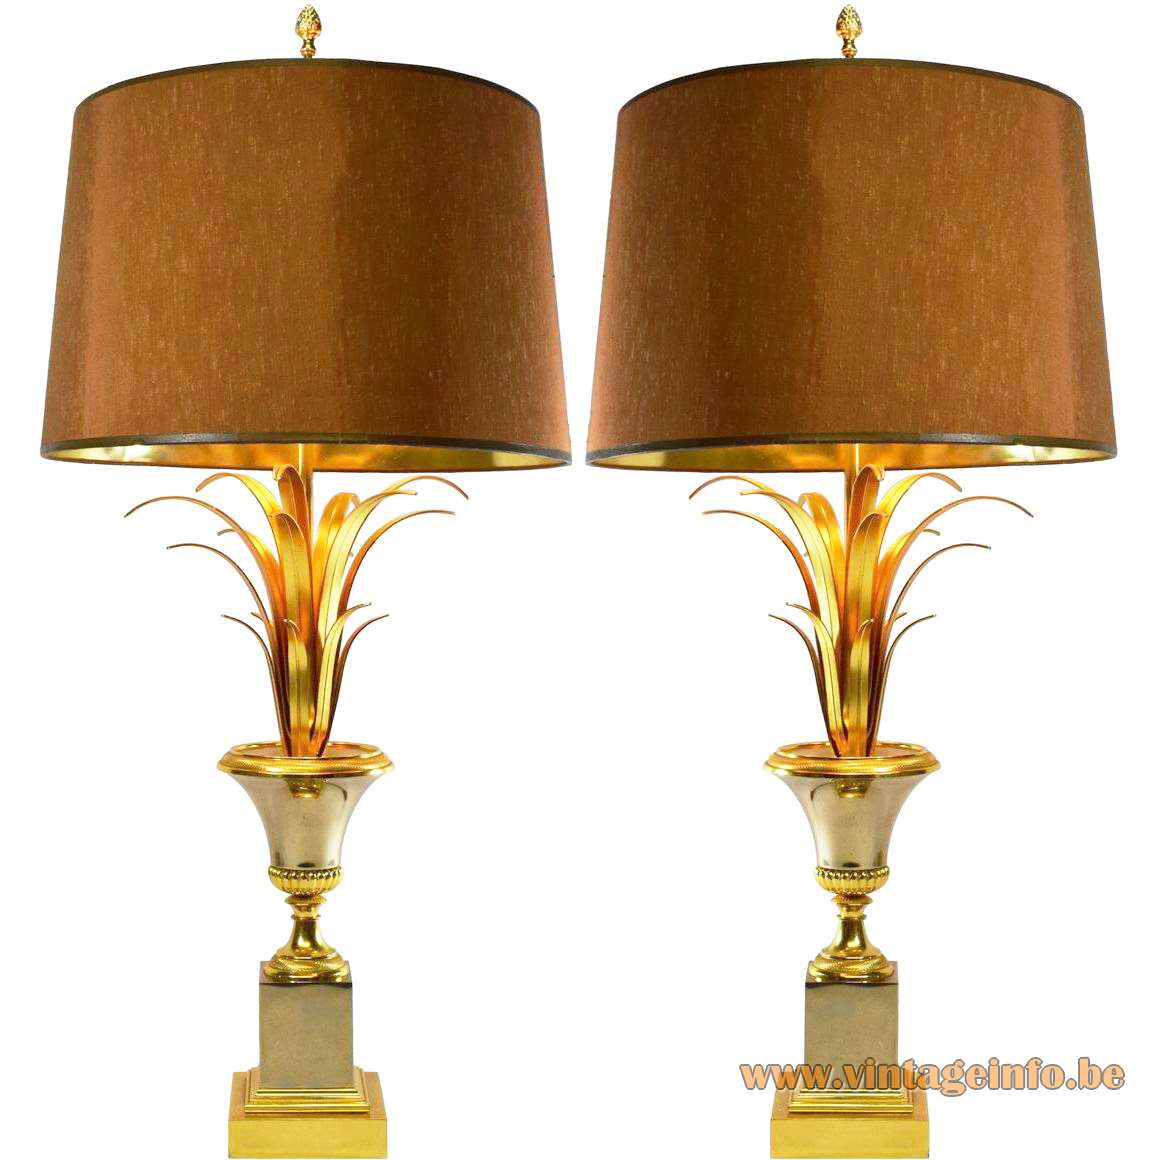 Boulanger Reed Table Lamps - Big version